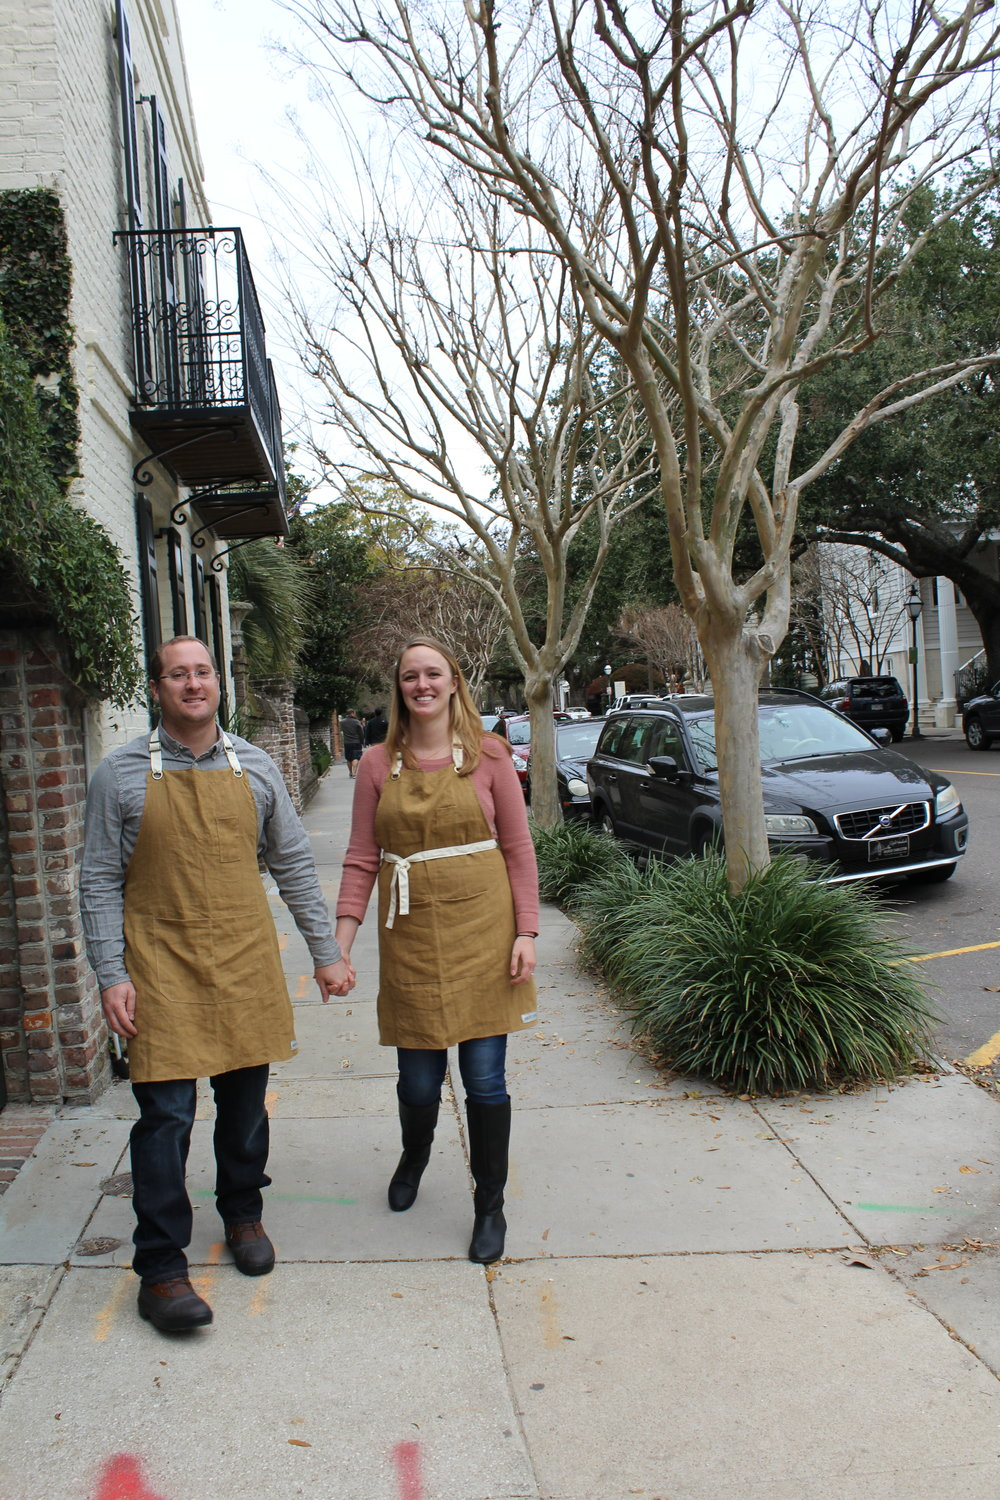 We spent the whole afternoon walking around Charleston in our aprons. People kept asking us what we were doing and where we got these cool aprons.